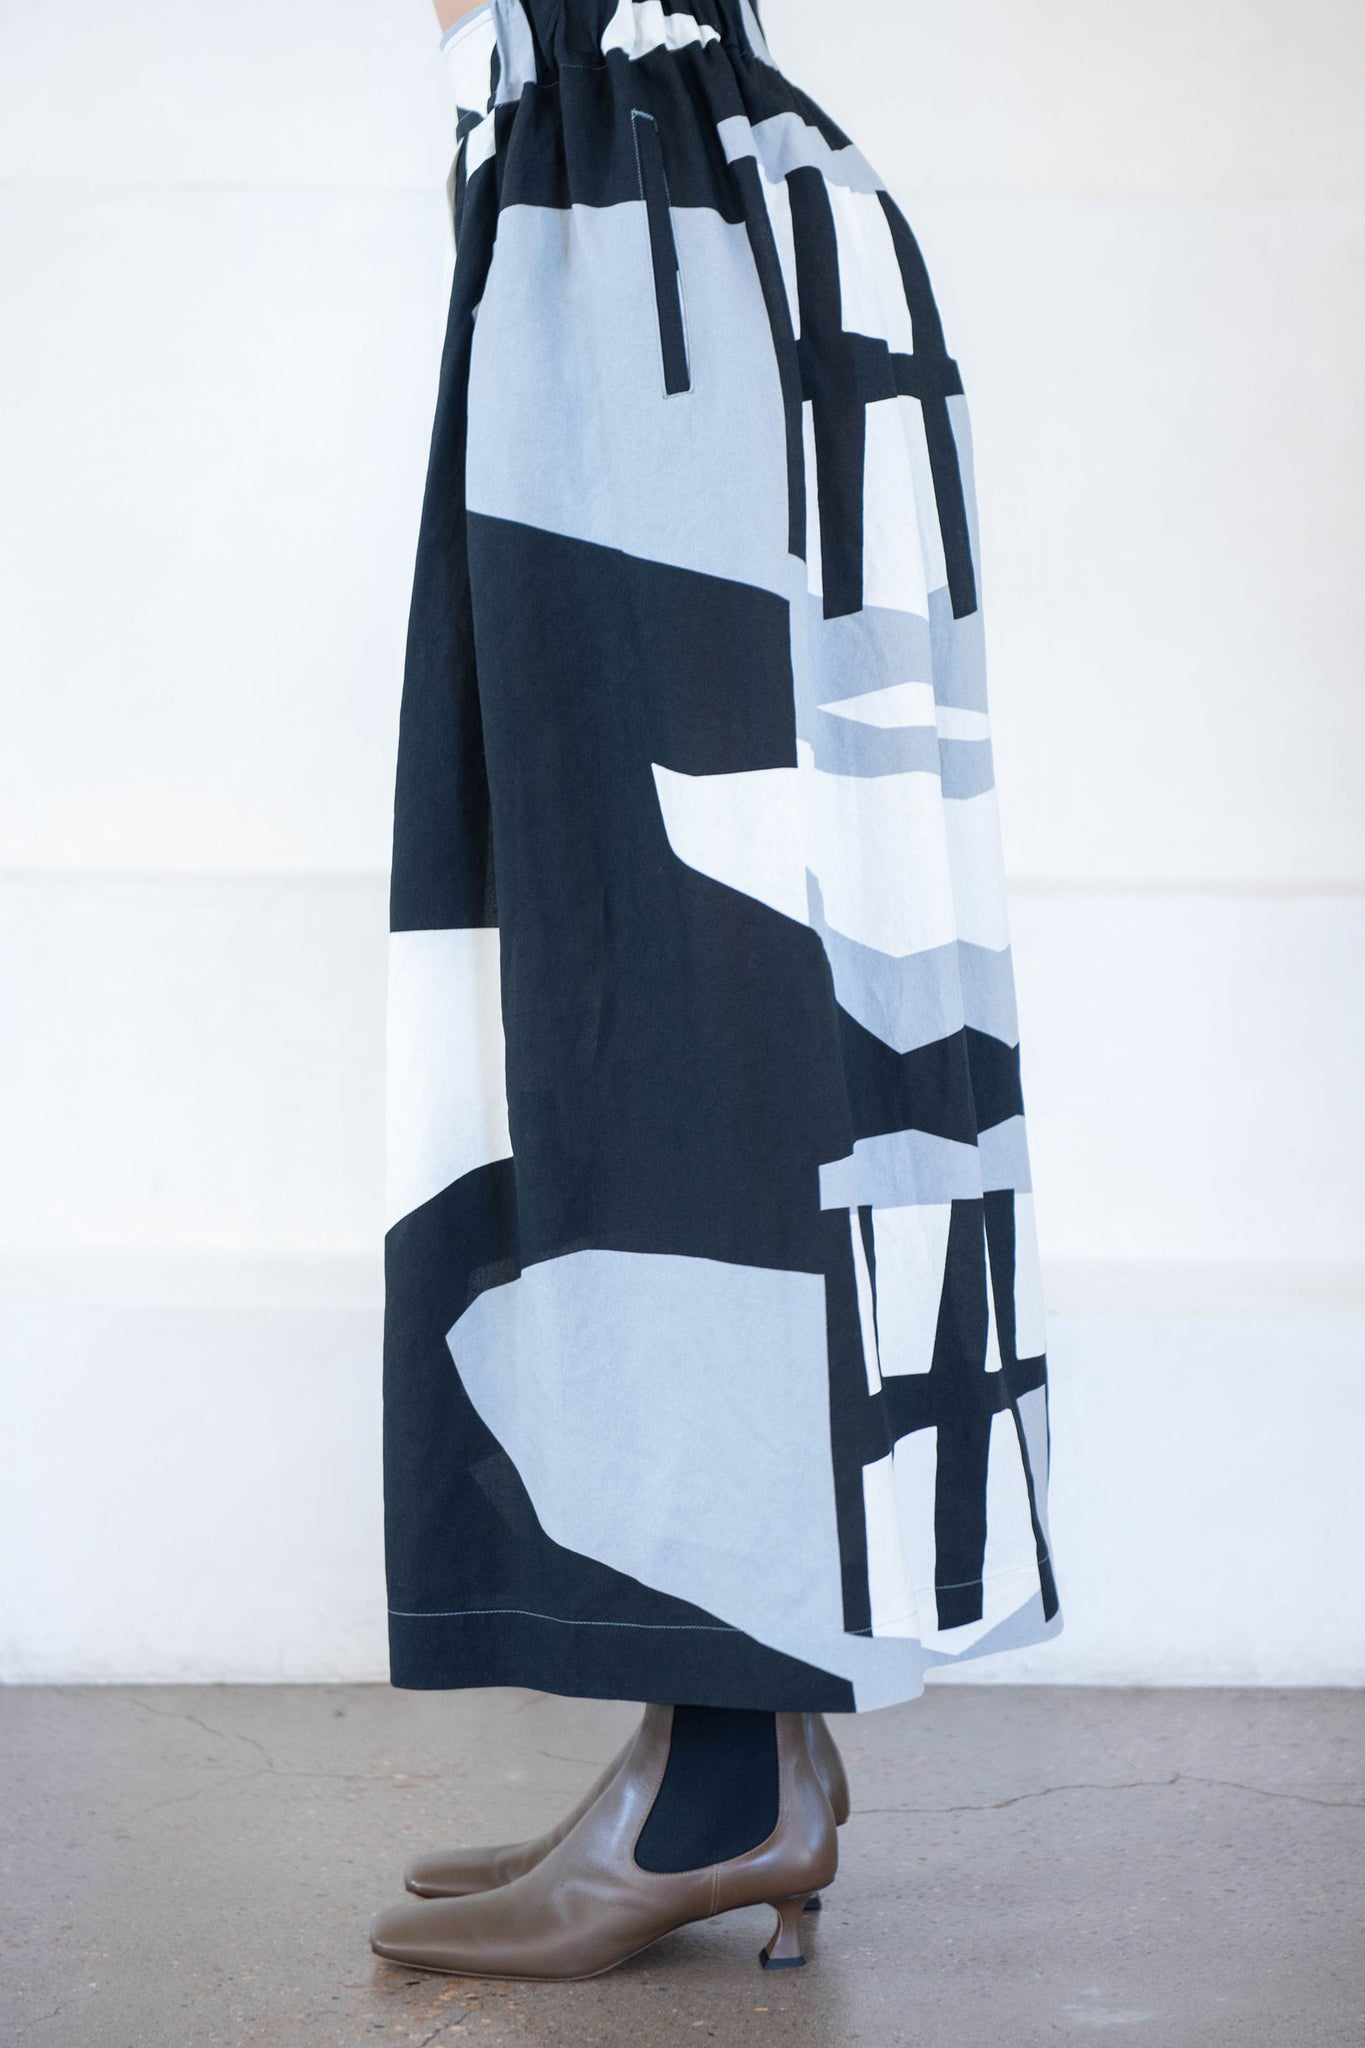 Issey Miyake - cut out pant, black and white